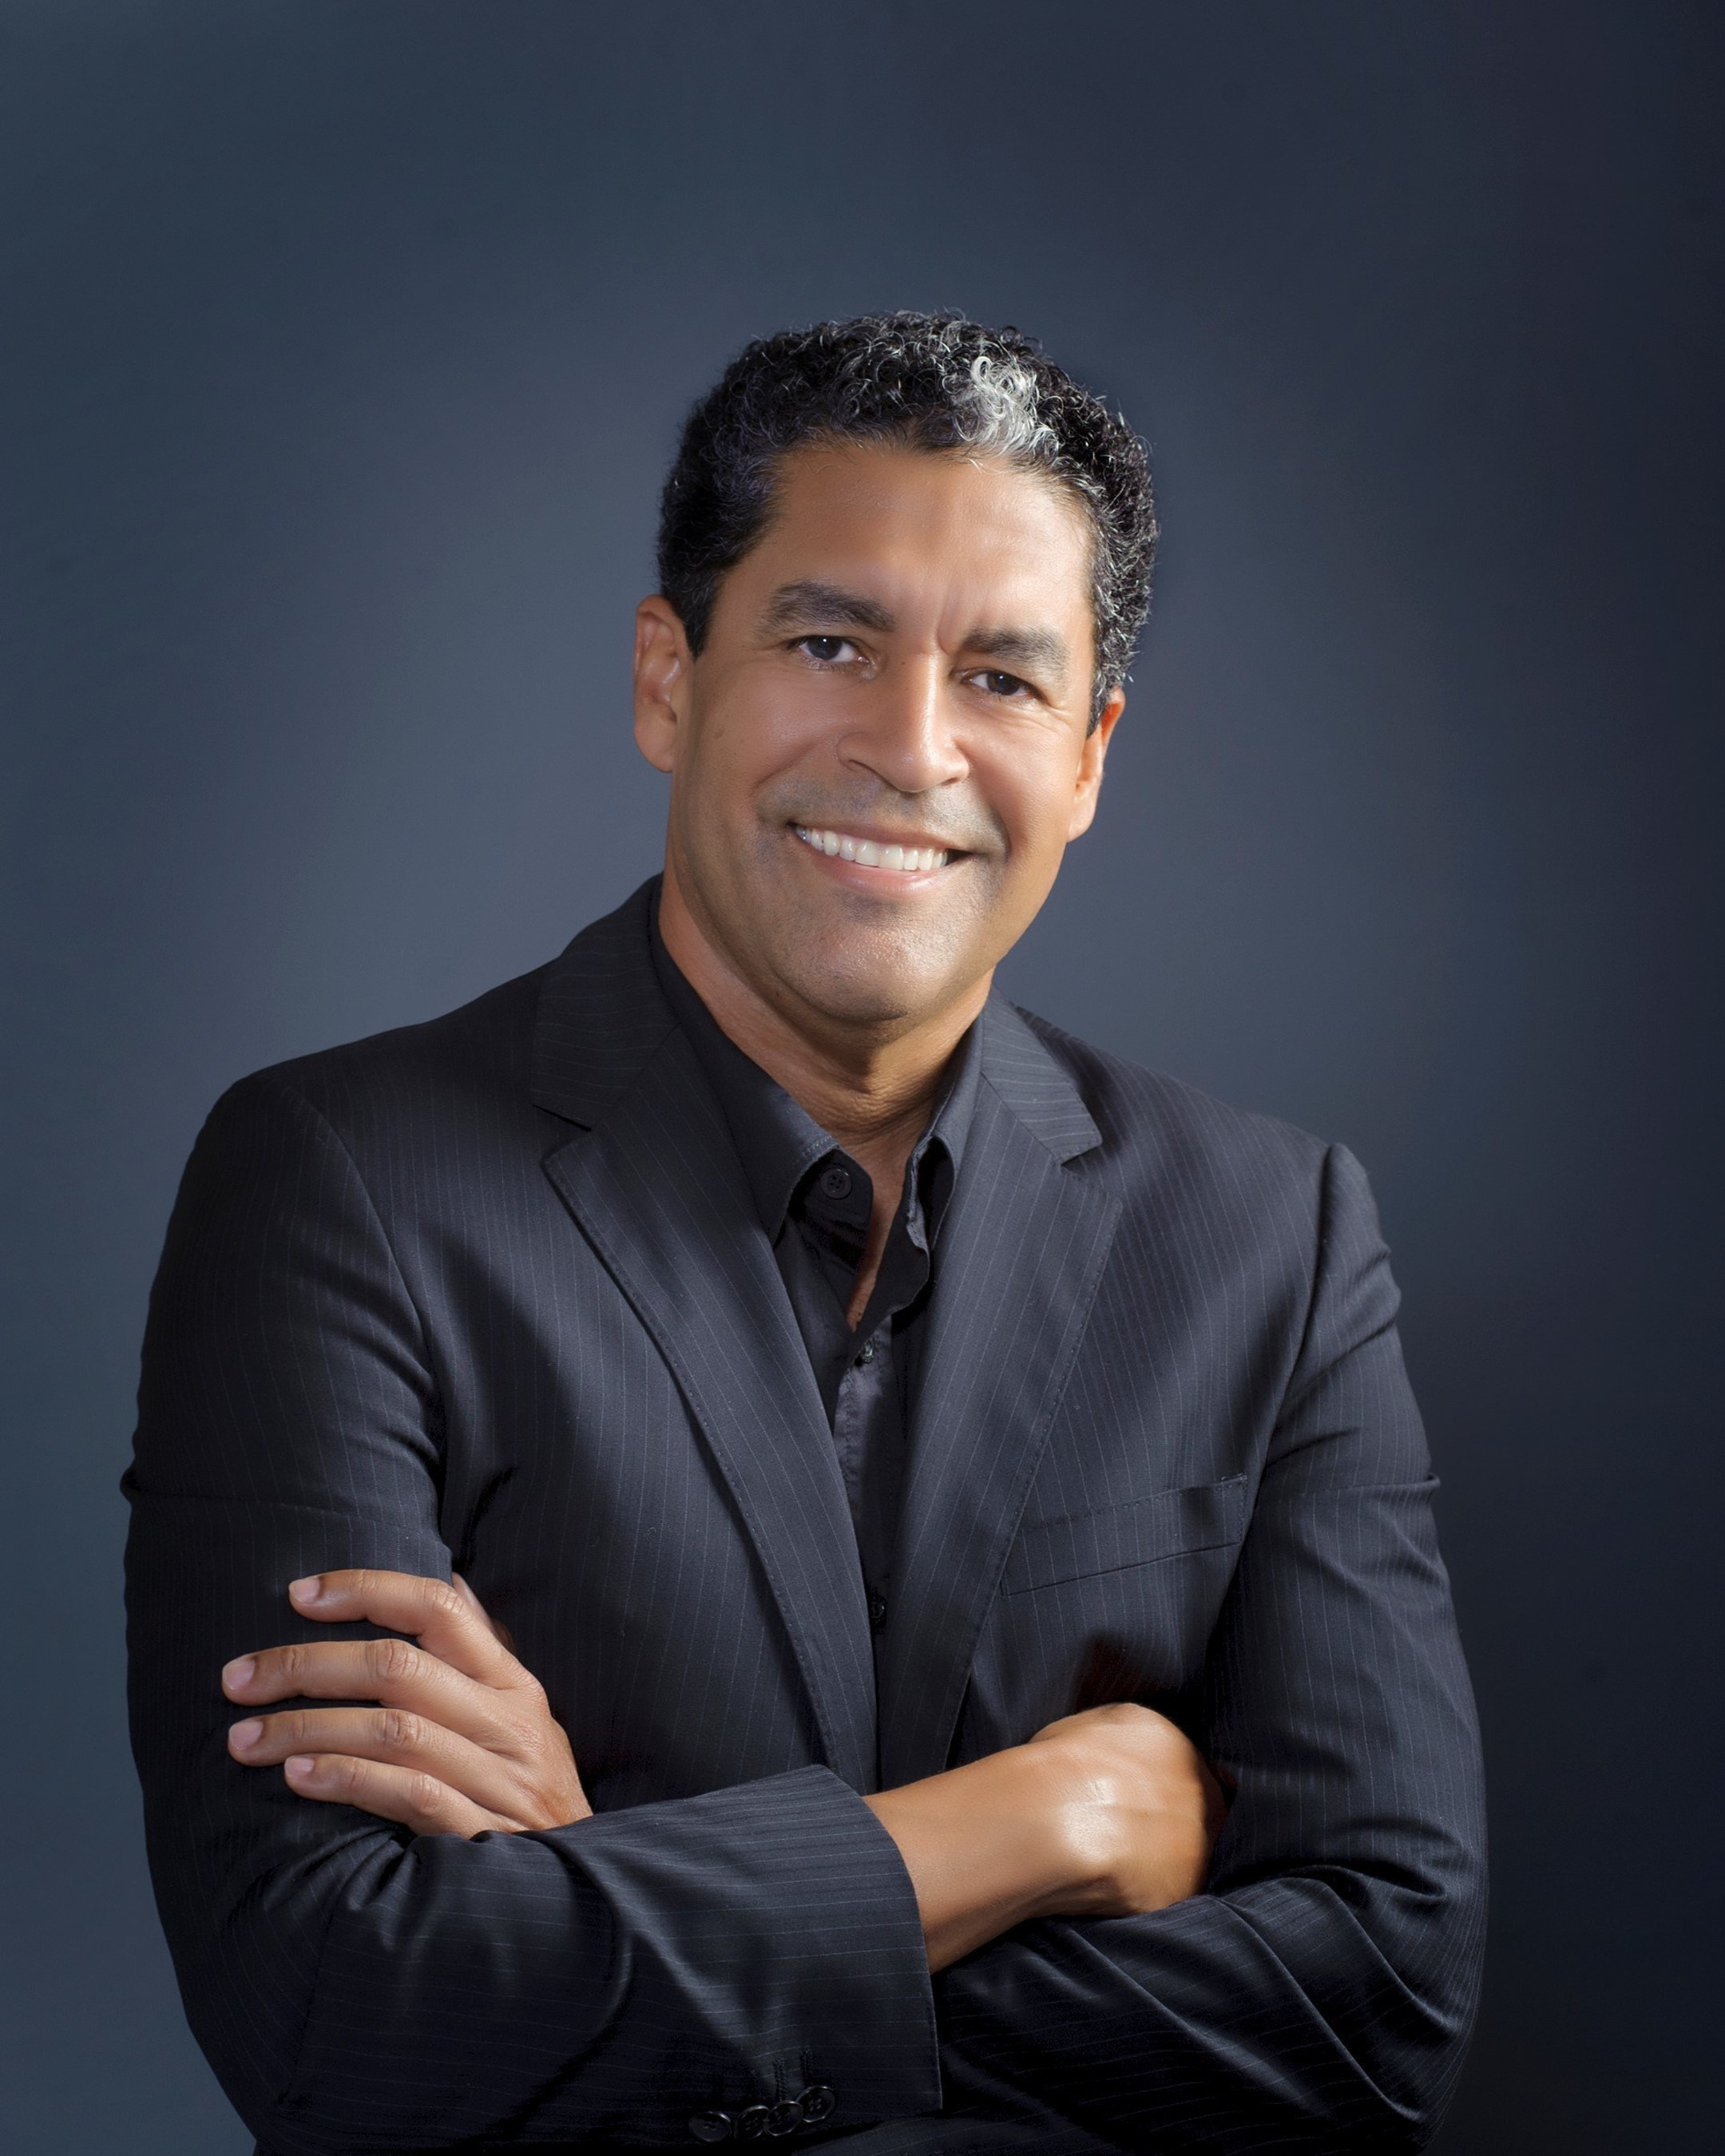 Partner Relationship Management leader Impartner expands into Latin America. Company taps software and LATAM channel sales pro Juan Munoz as Vice President to lead the expansion of the company's disruptive PRM solutions into the region.